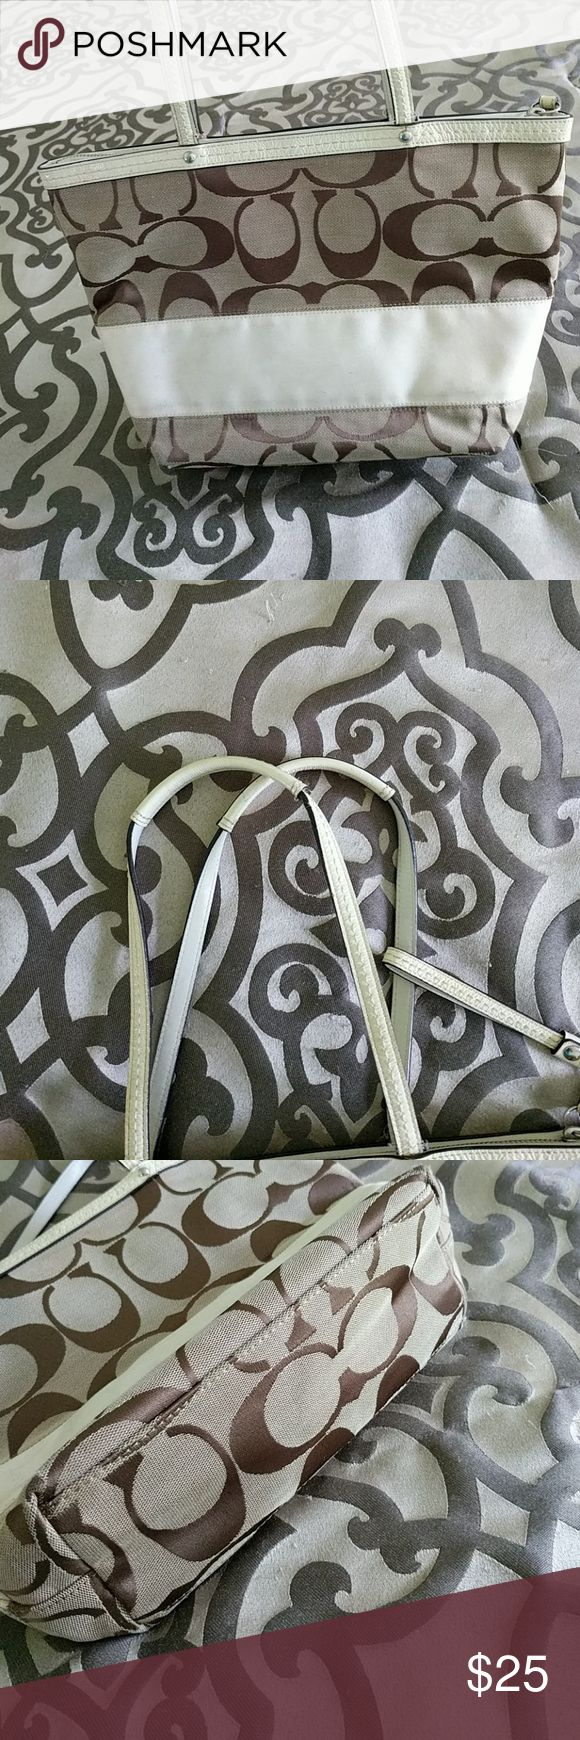 Coach purse Cream and tan Coach purse. I purchased it off of Posh but haven't use it due to I found another purse. This bag does have some light marks on it but I believe it will clean up nicely. Straps are in great condition and inside of the bag is very clean. Coach Bags Shoulder Bags